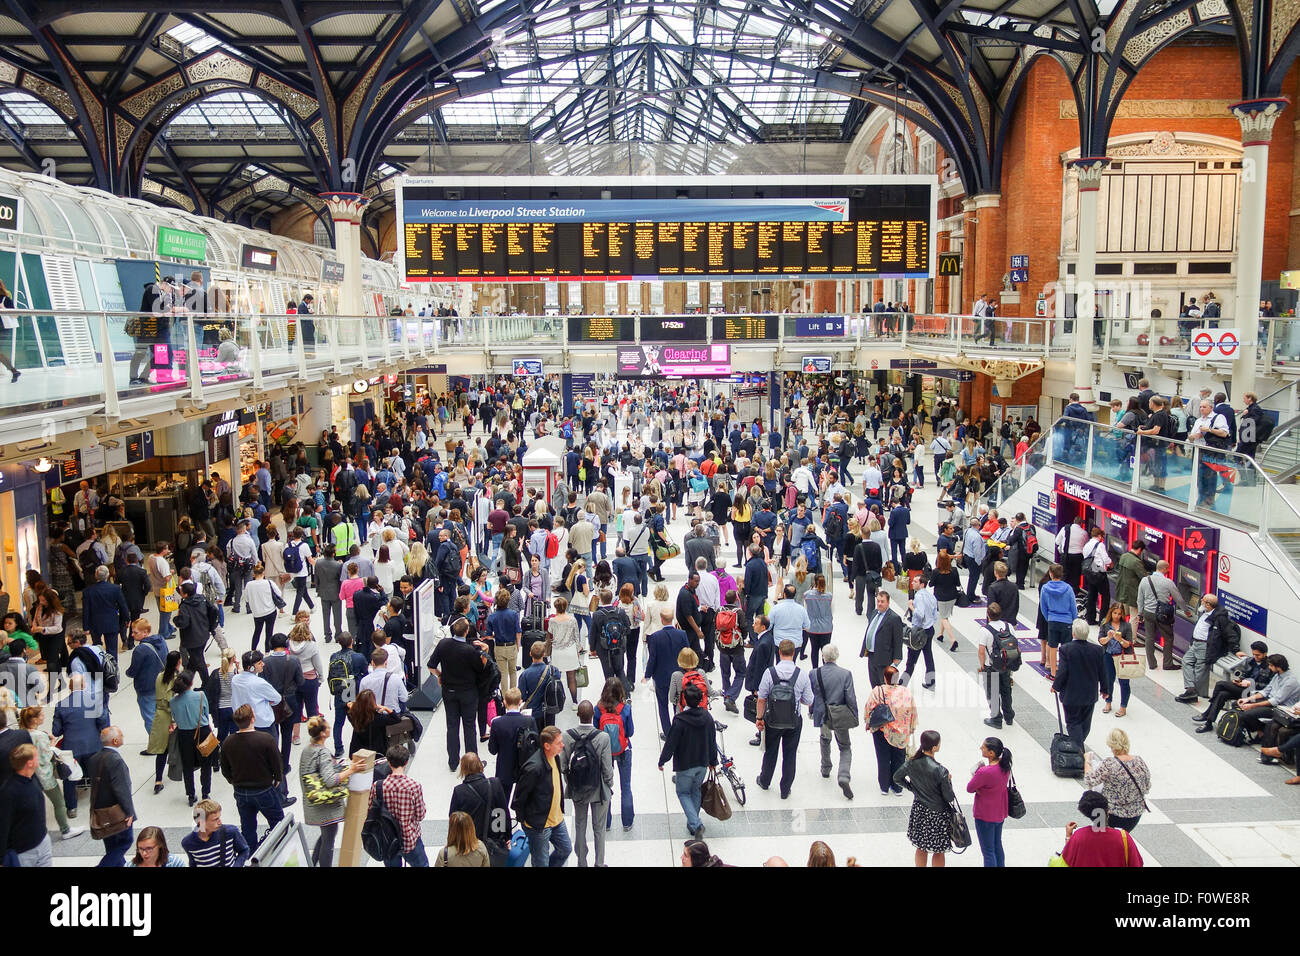 The main concourse at Liverpool Street Station during a busy rush hour. - Stock Image